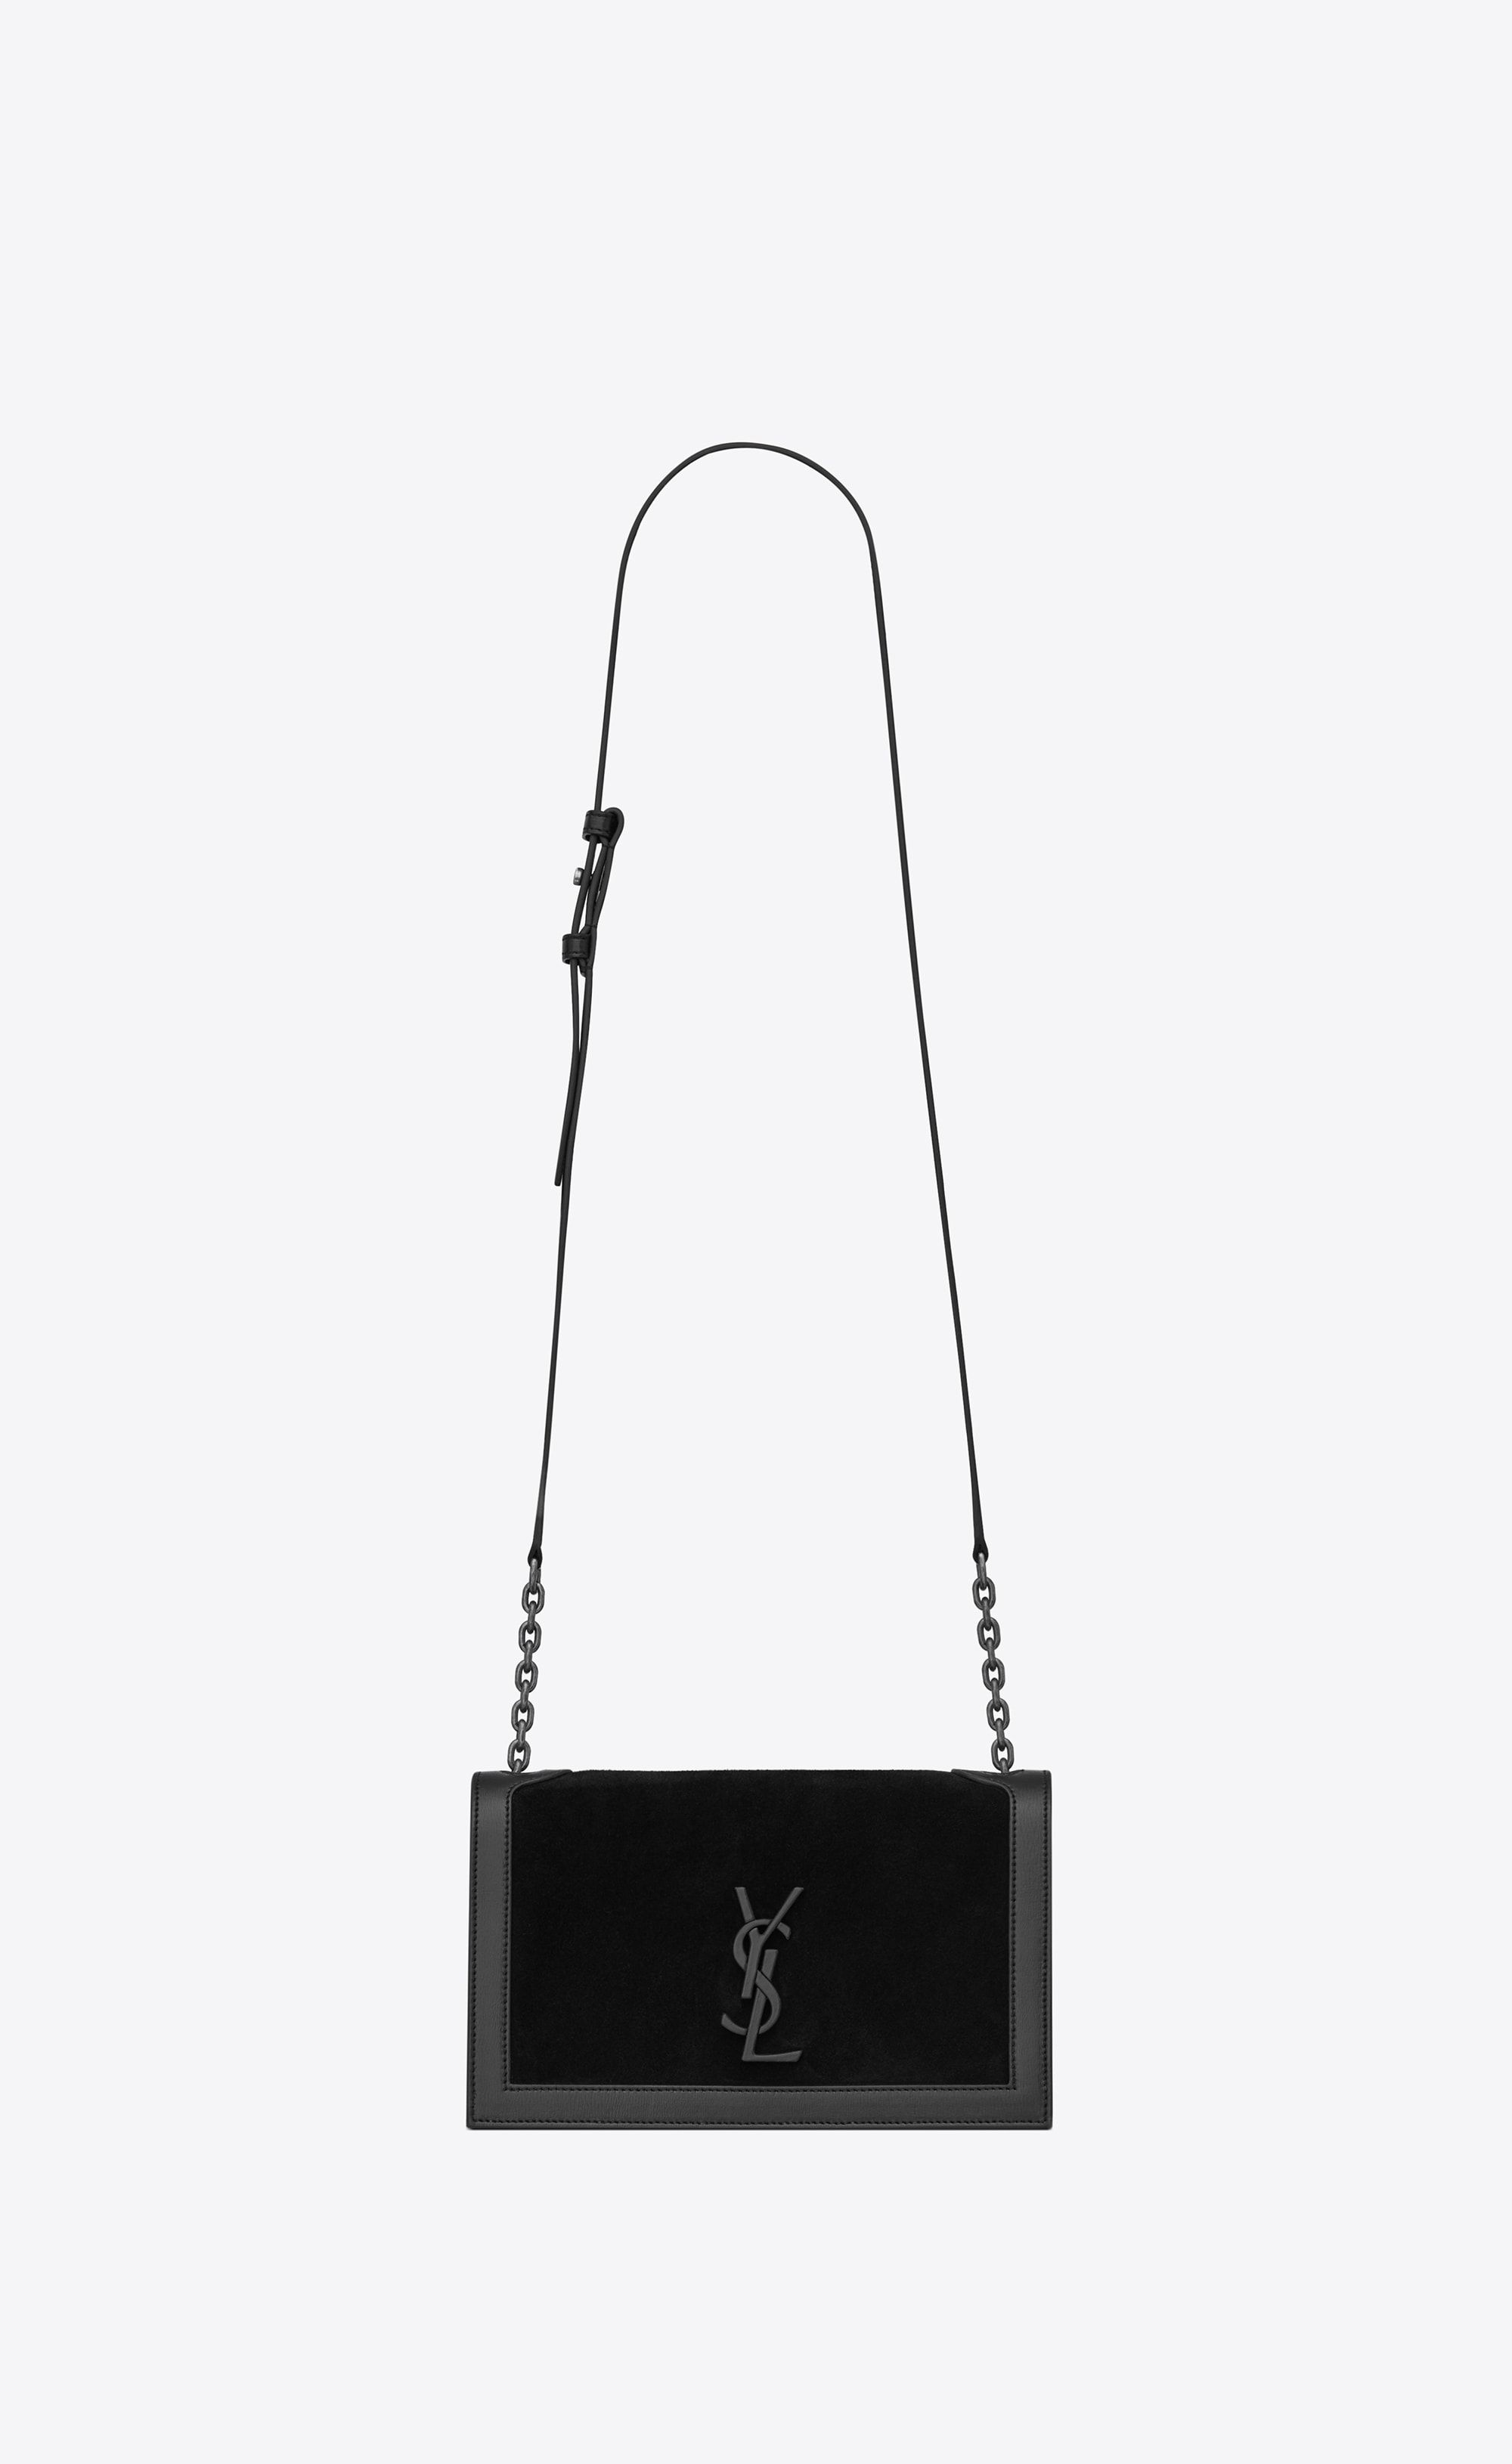 dfd32049ae8 Book Bag in leather and suede in 2019 | Handbags | Bags, Ysl bag ...